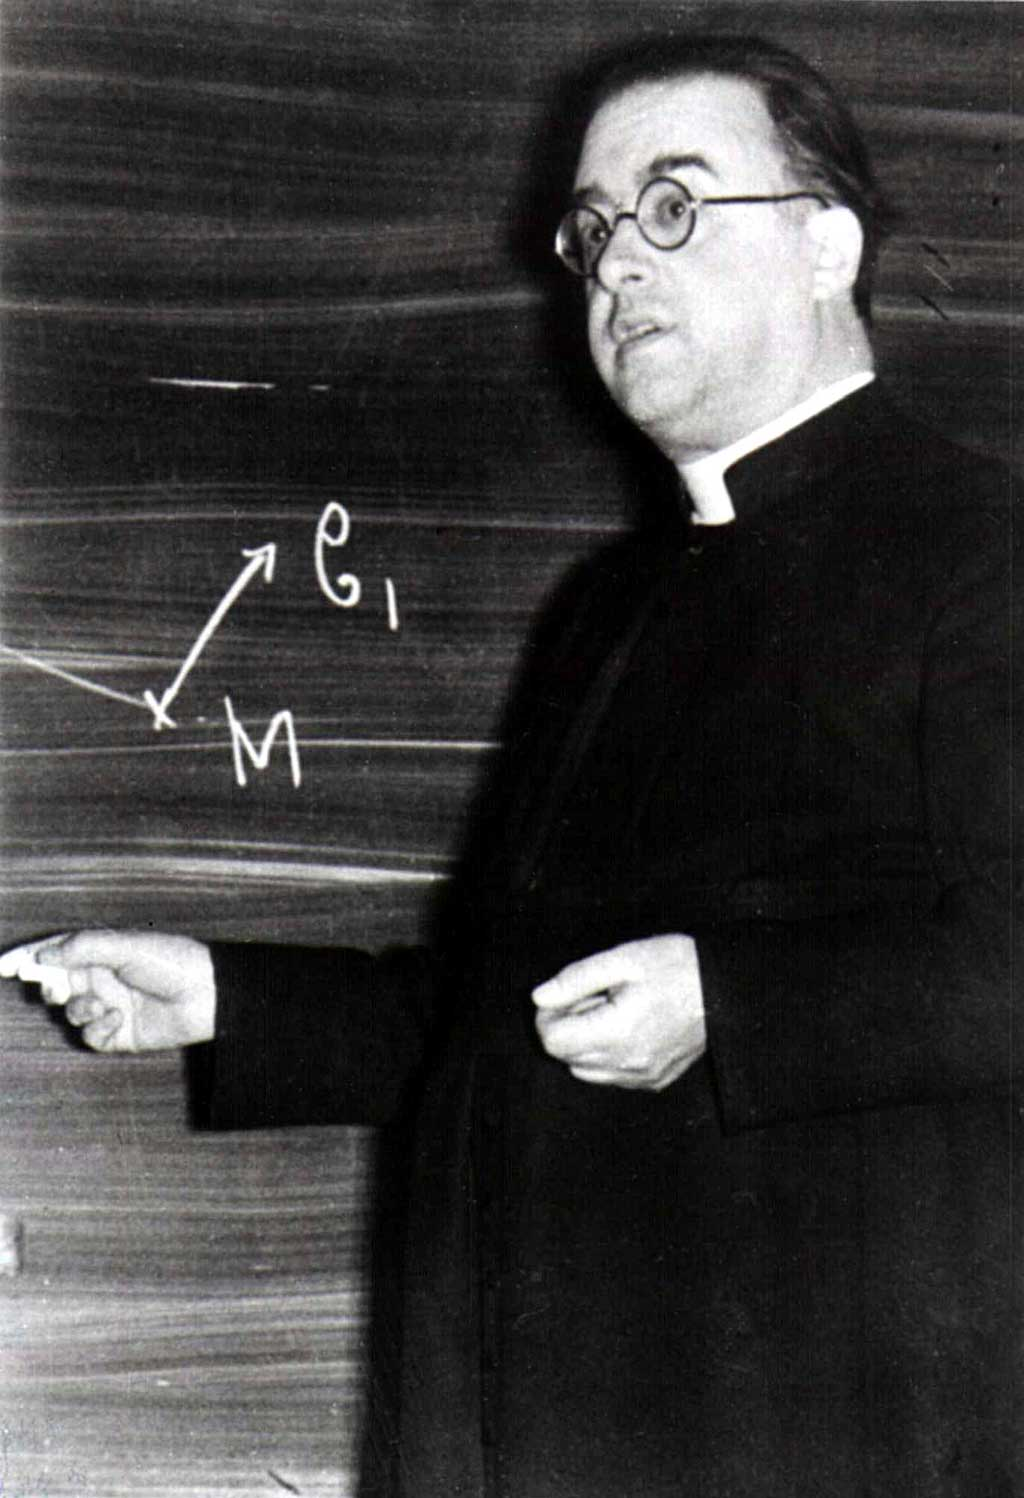 Georges Lemaître is shown writing on a chalkboard.